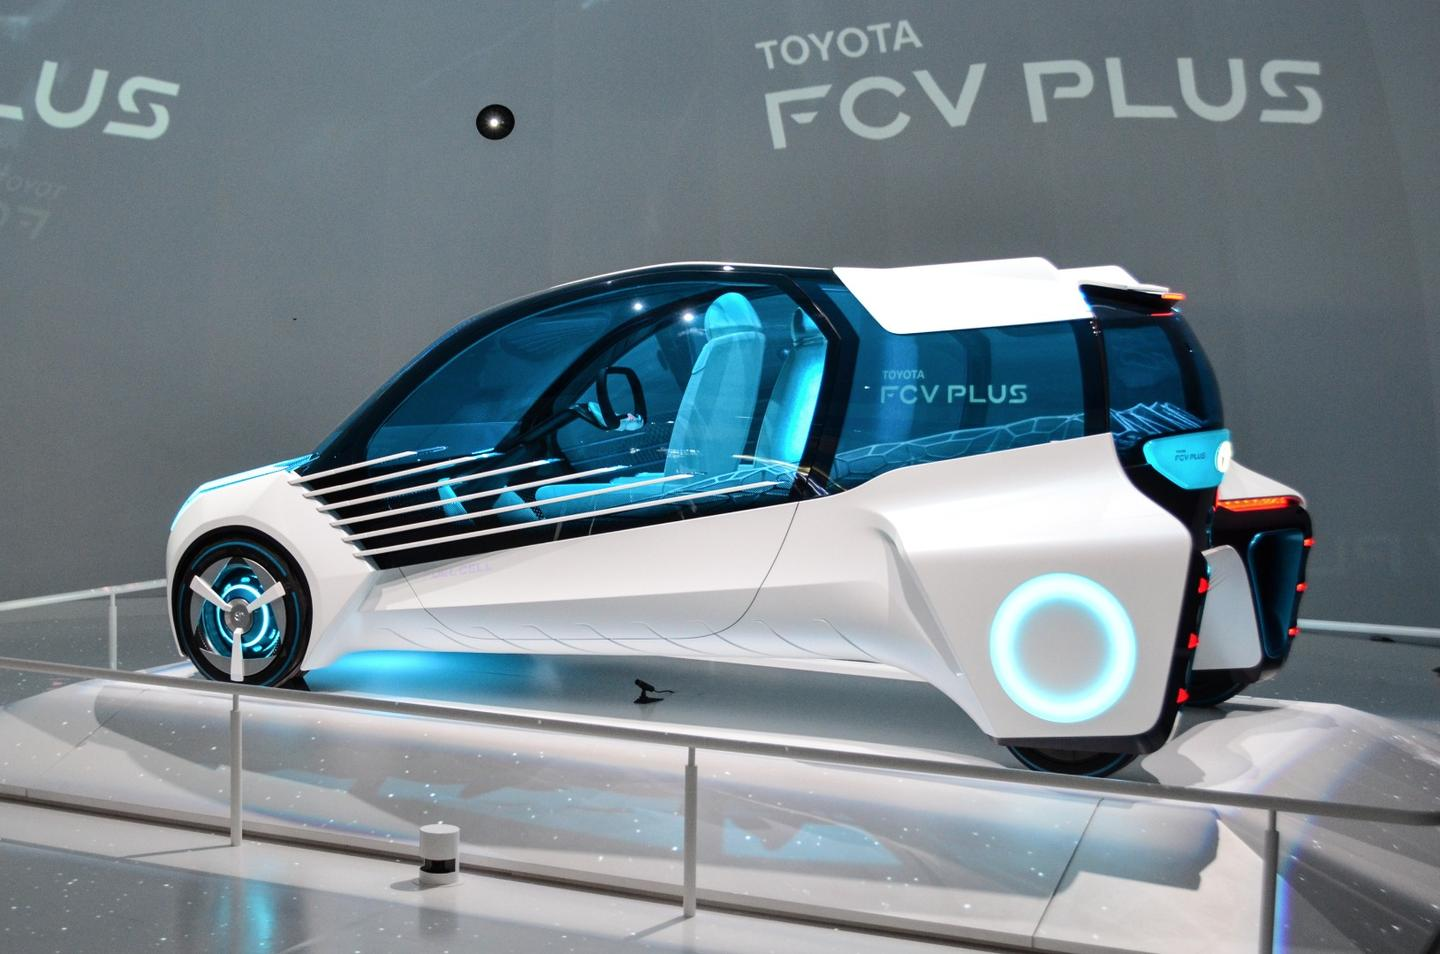 Toyota's vision for the car includes the ability to hook it up to an external hydrogen source so it can be used to power the home